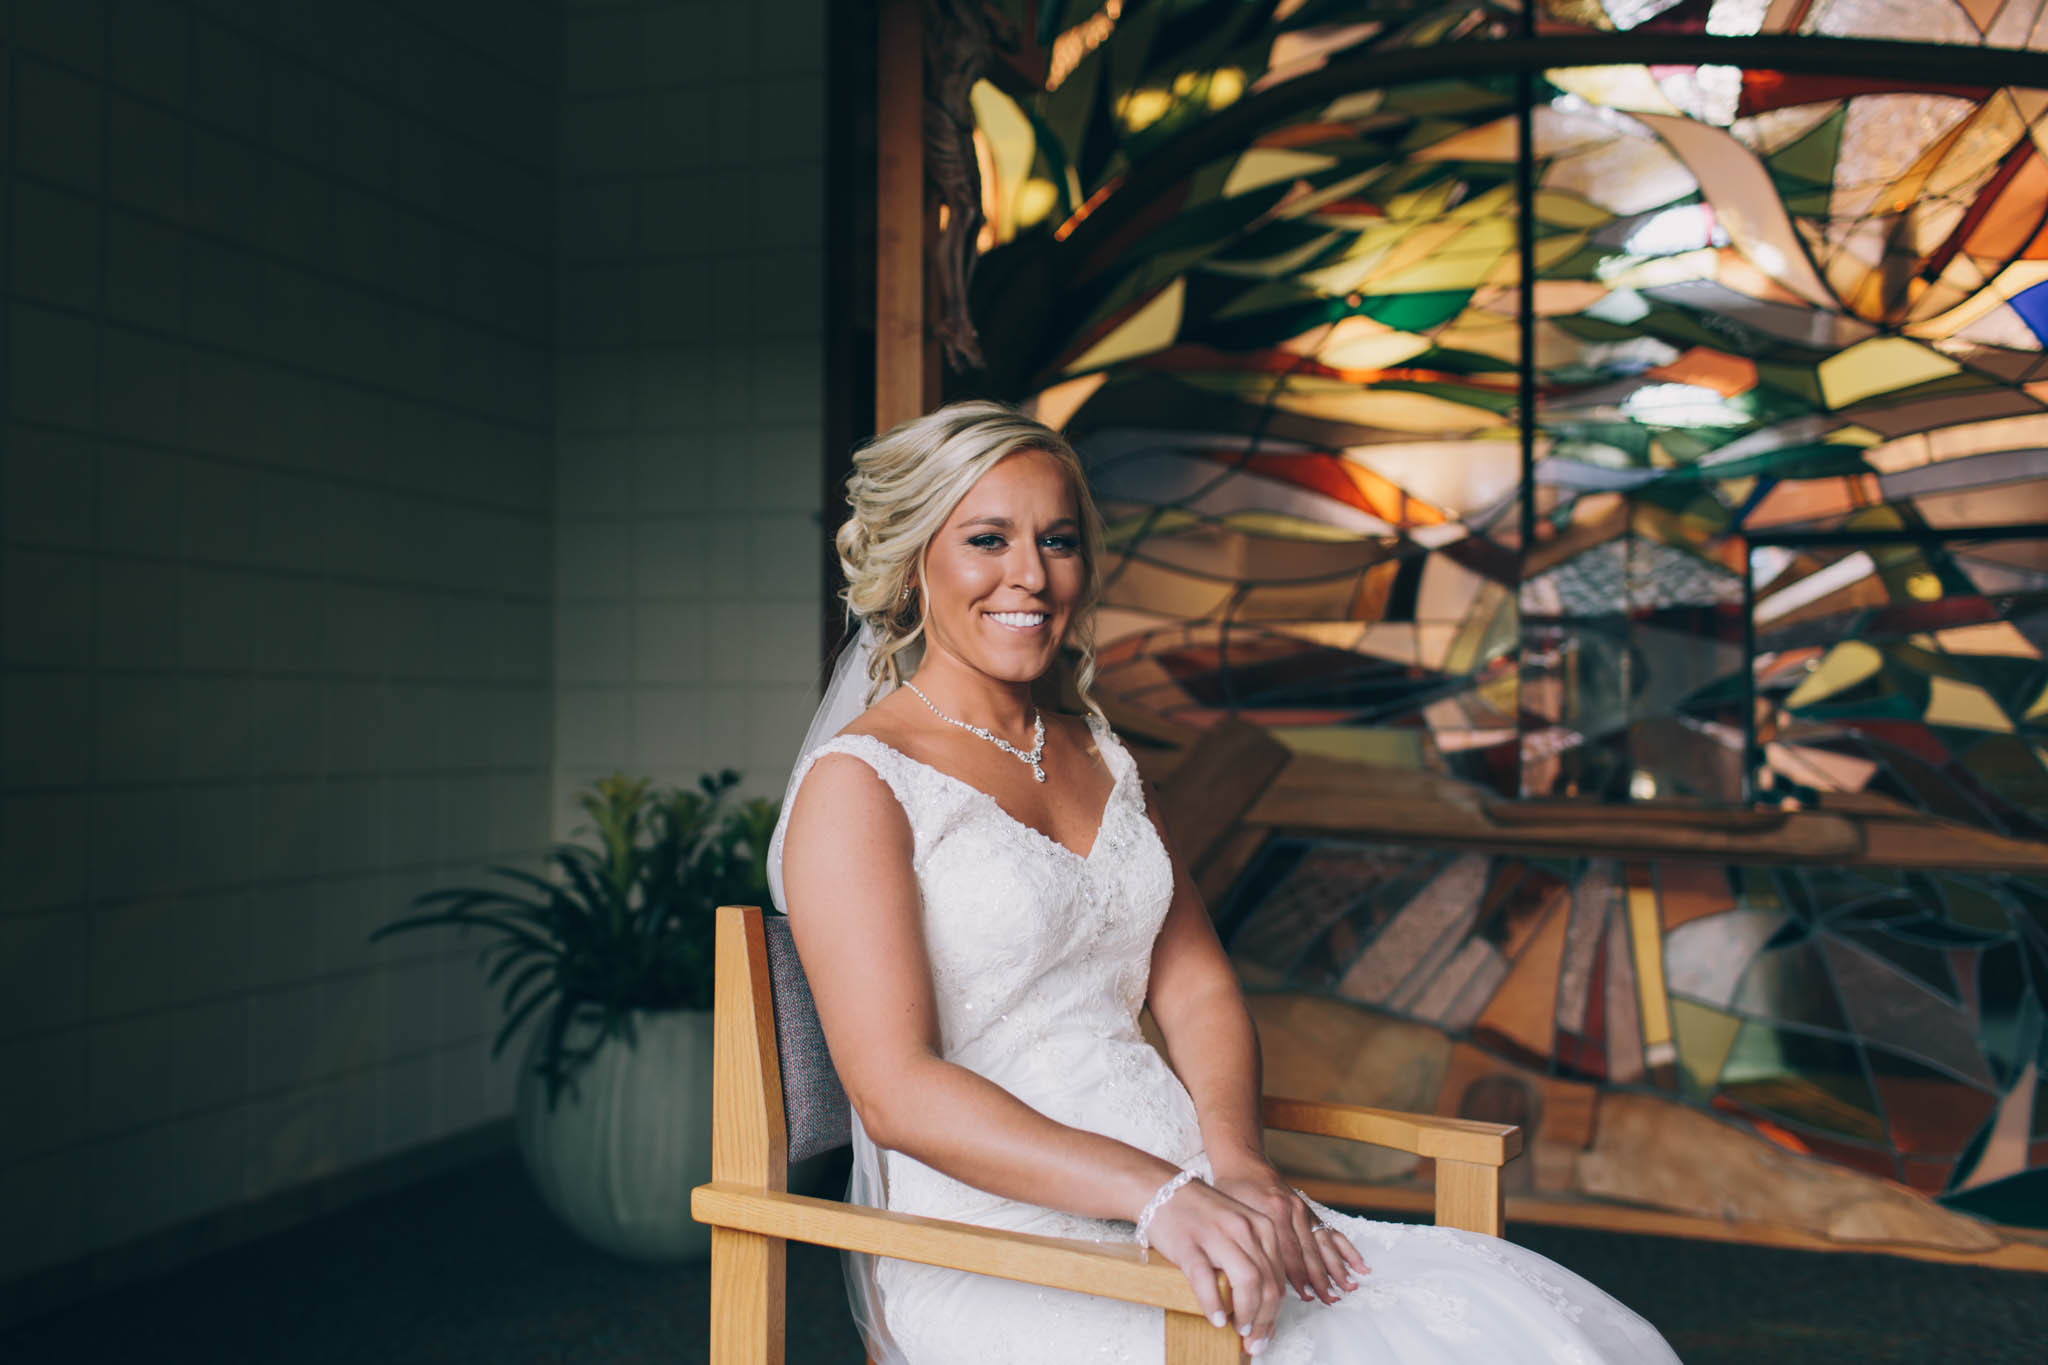 Jillian VanZytveld Photography - Grand Rapids Lifestyle Wedding Photography - 035.jpg